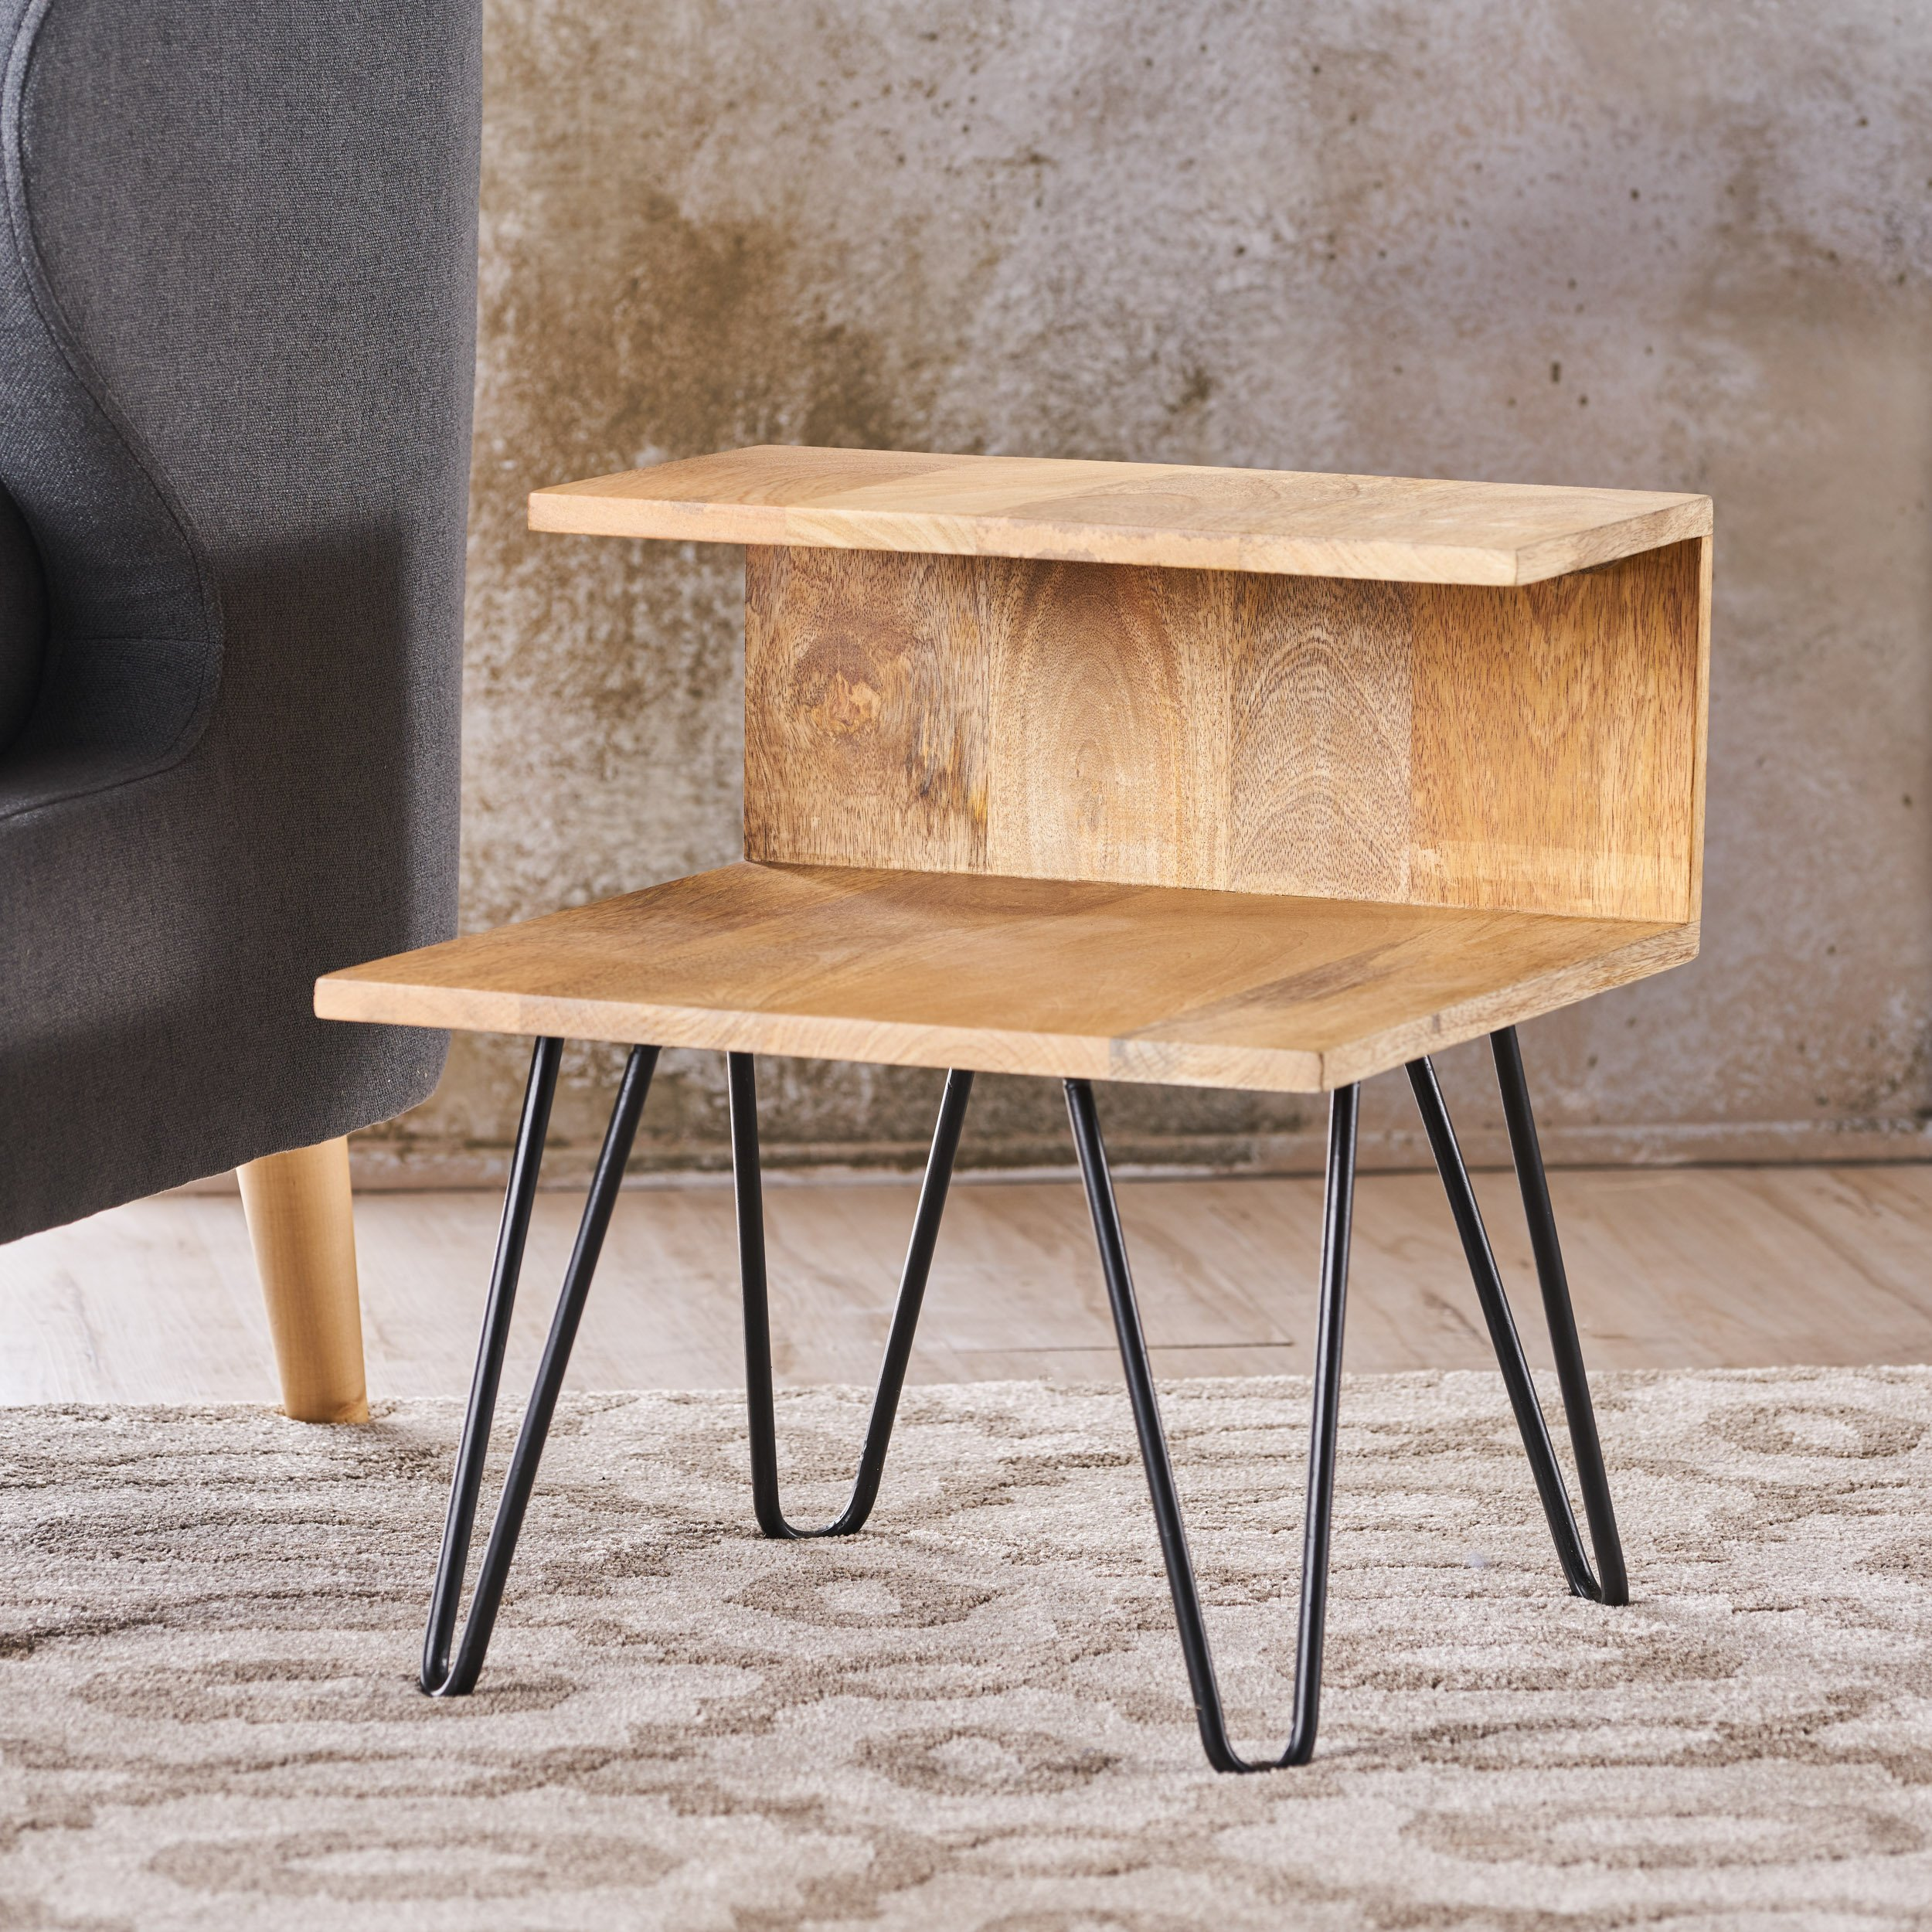 Top 3 Hairpin Legs Side Table and End Table Options Right Now